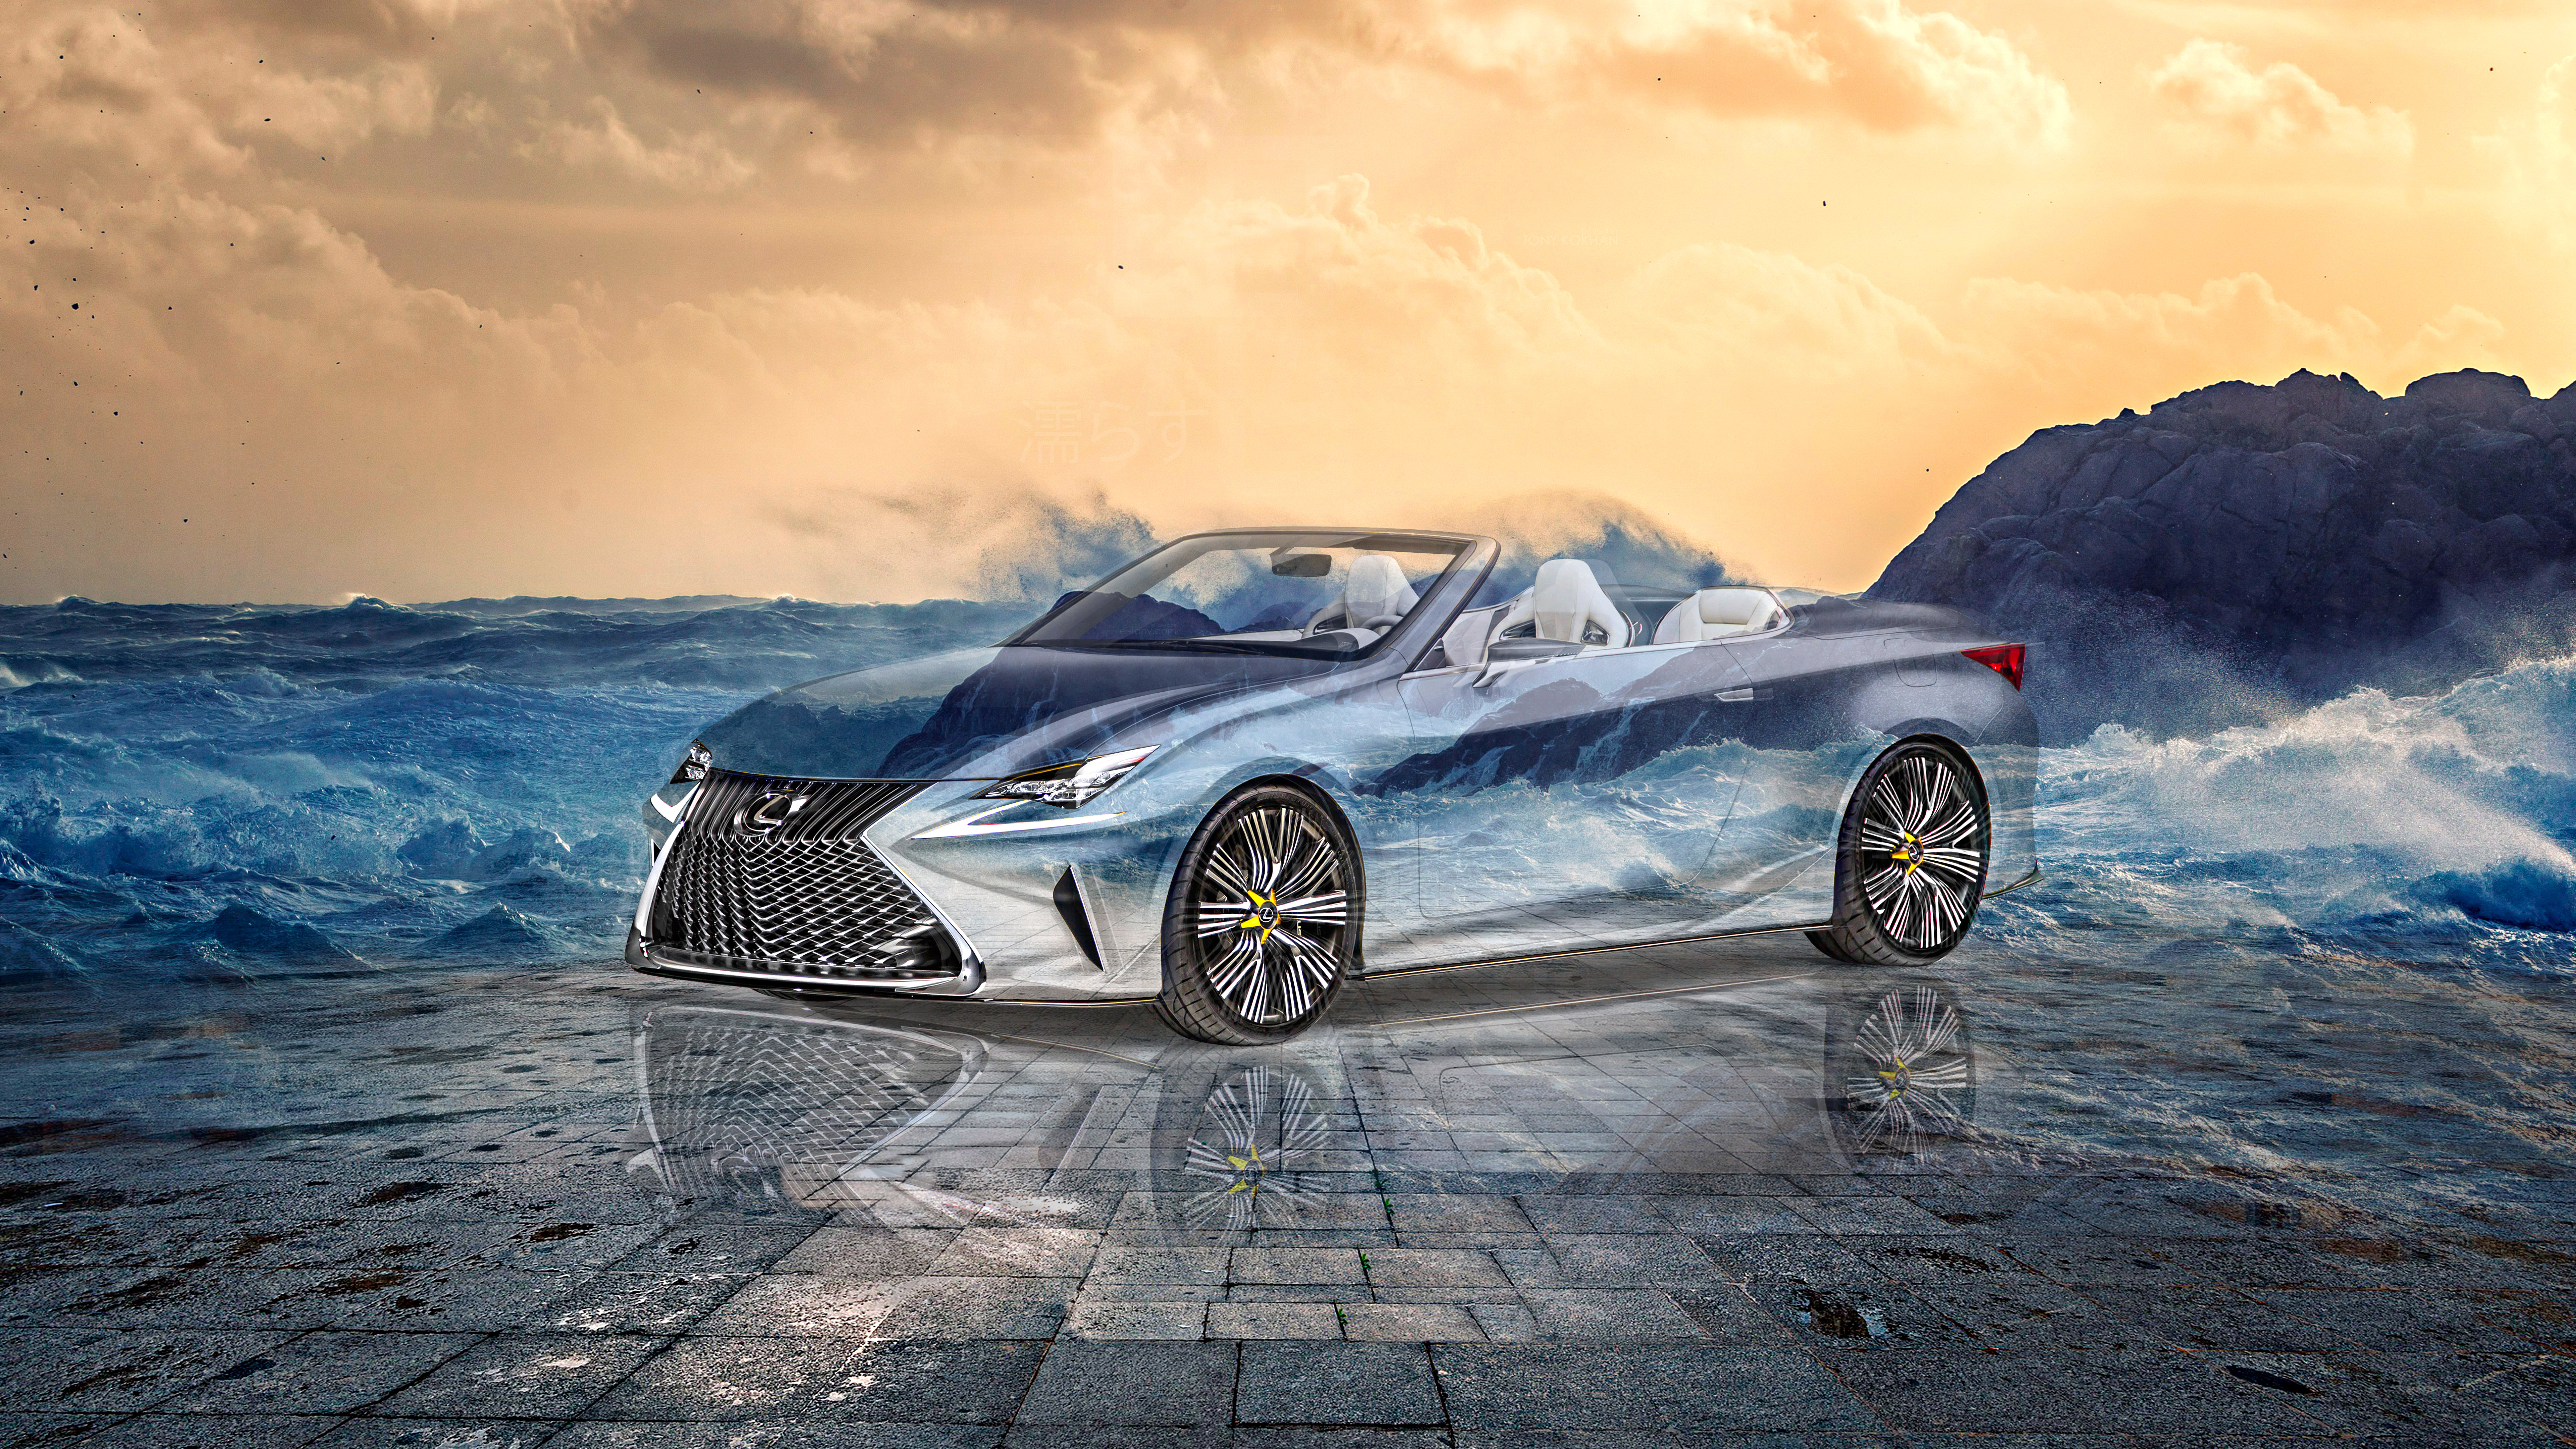 Lexus-LF-C2-Super-Crystal-Wet-Soul-Sea-Water-Waves-Tactile-Hologram-Art-Car-2021-Multicolors-8K-Wallpapers-by-Tony-Kokhan-www.el-tony.com-image